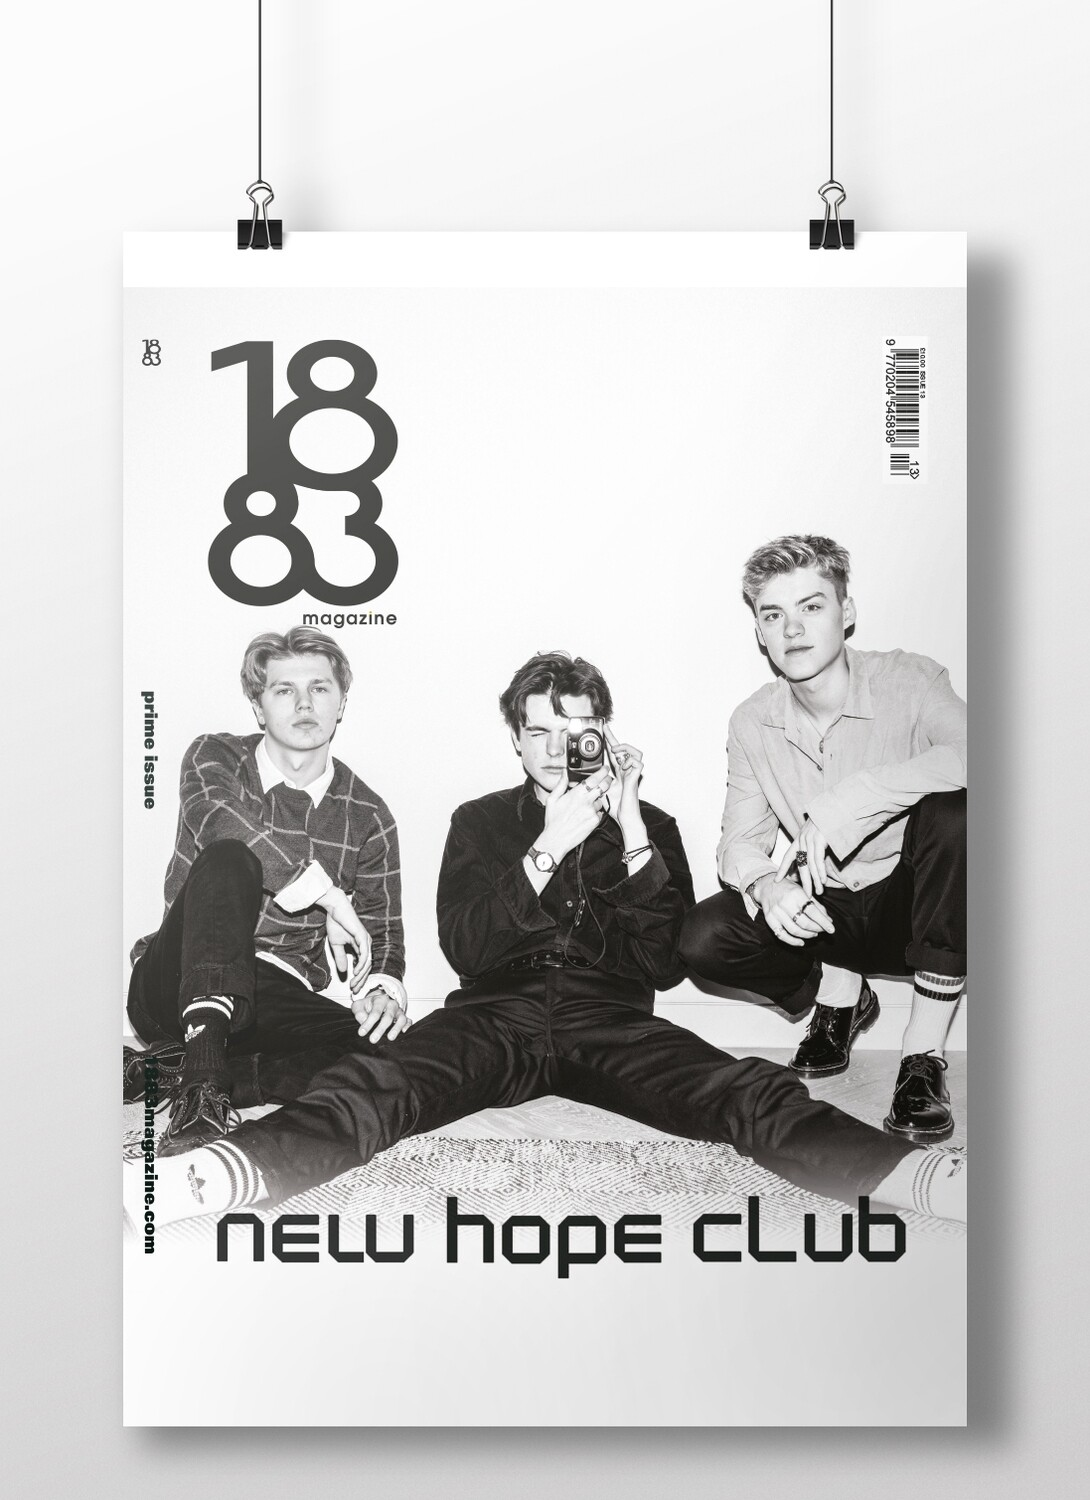 New Hope Club 2 cover Poster